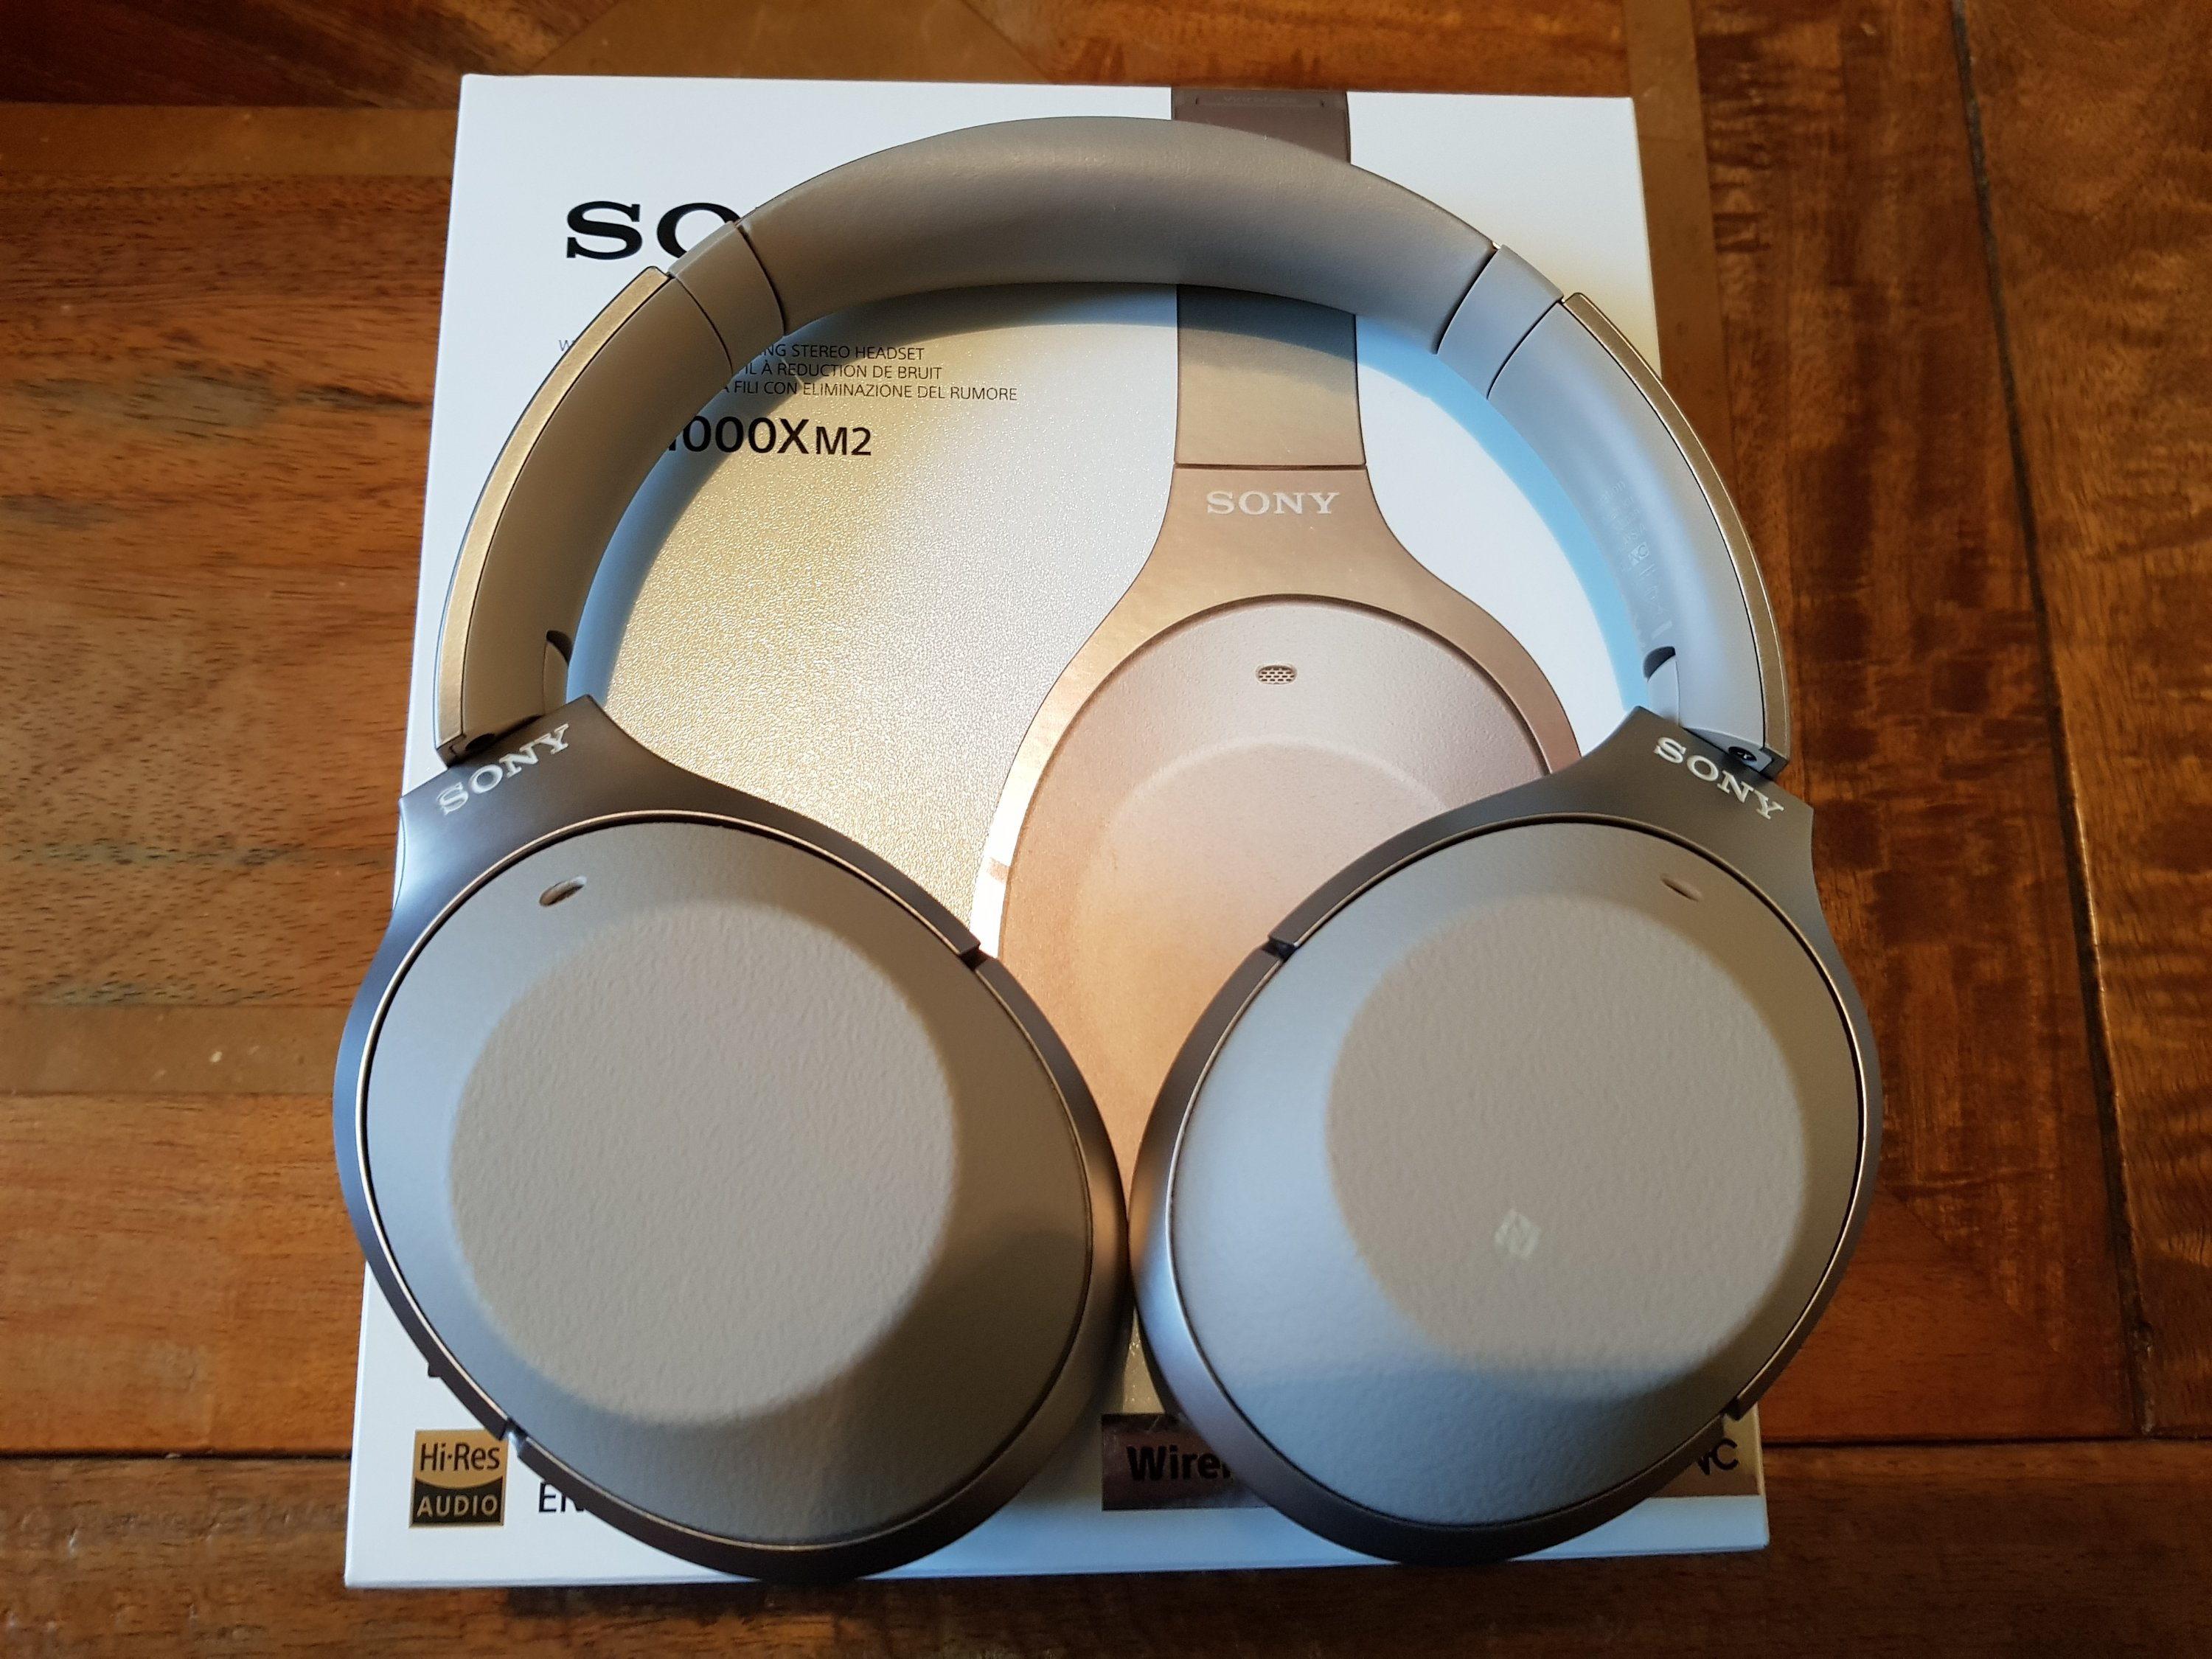 7c17c0bc2a7 Sony WH-1000XM2 Wireless Noise Cancellation Headphones Review + Comparison  with Beats & Bose